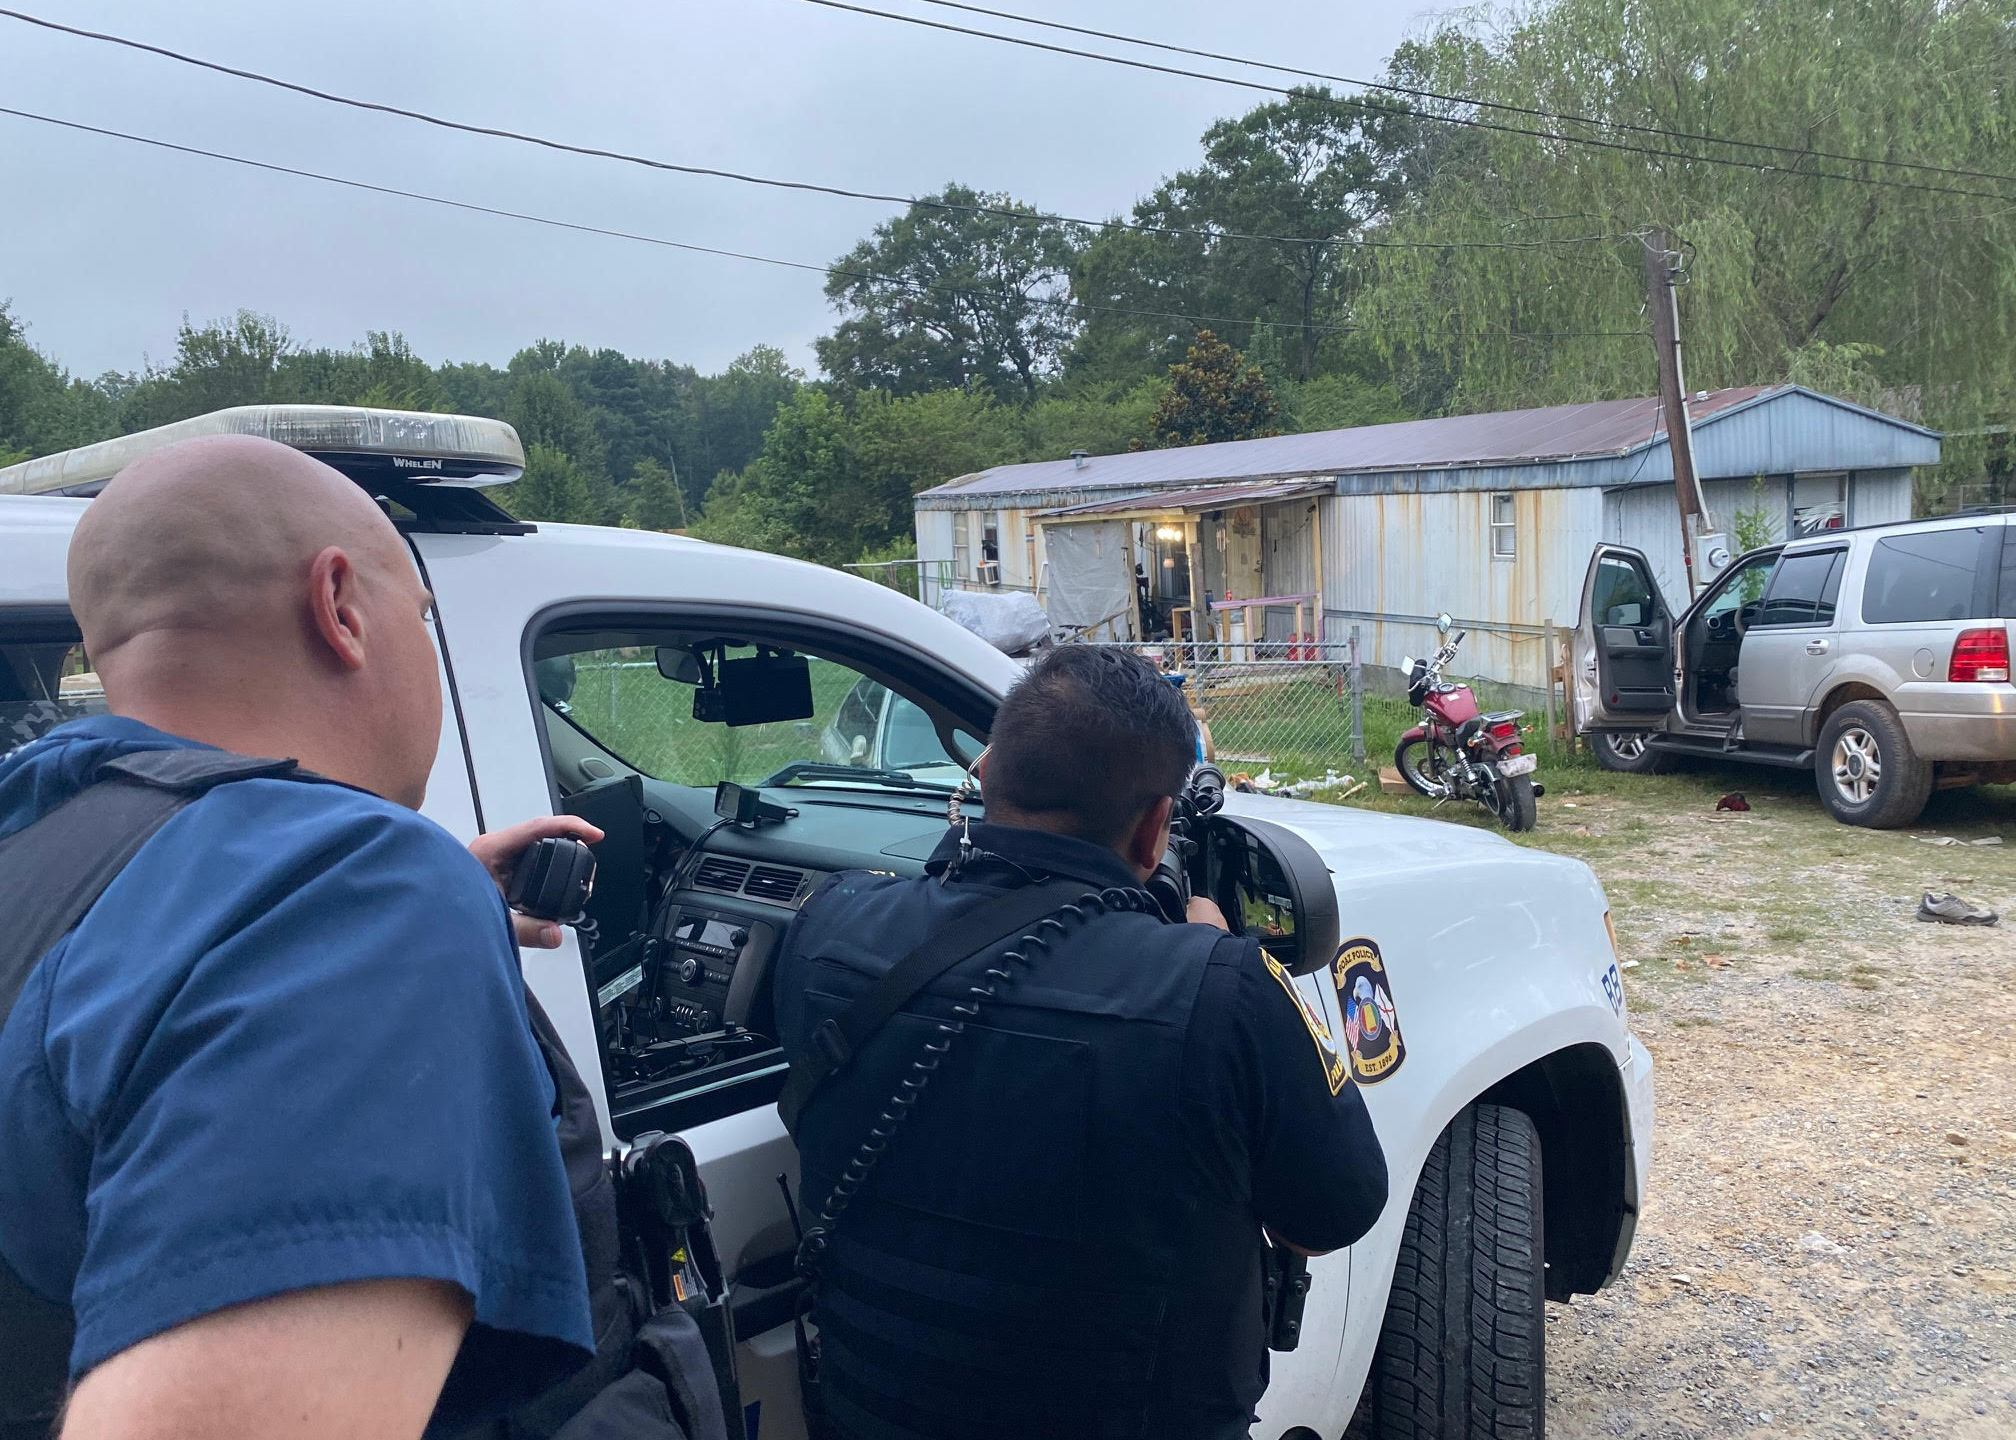 Swat Team Uses Cigarettes To Lure Suspect Out During 5 Hour